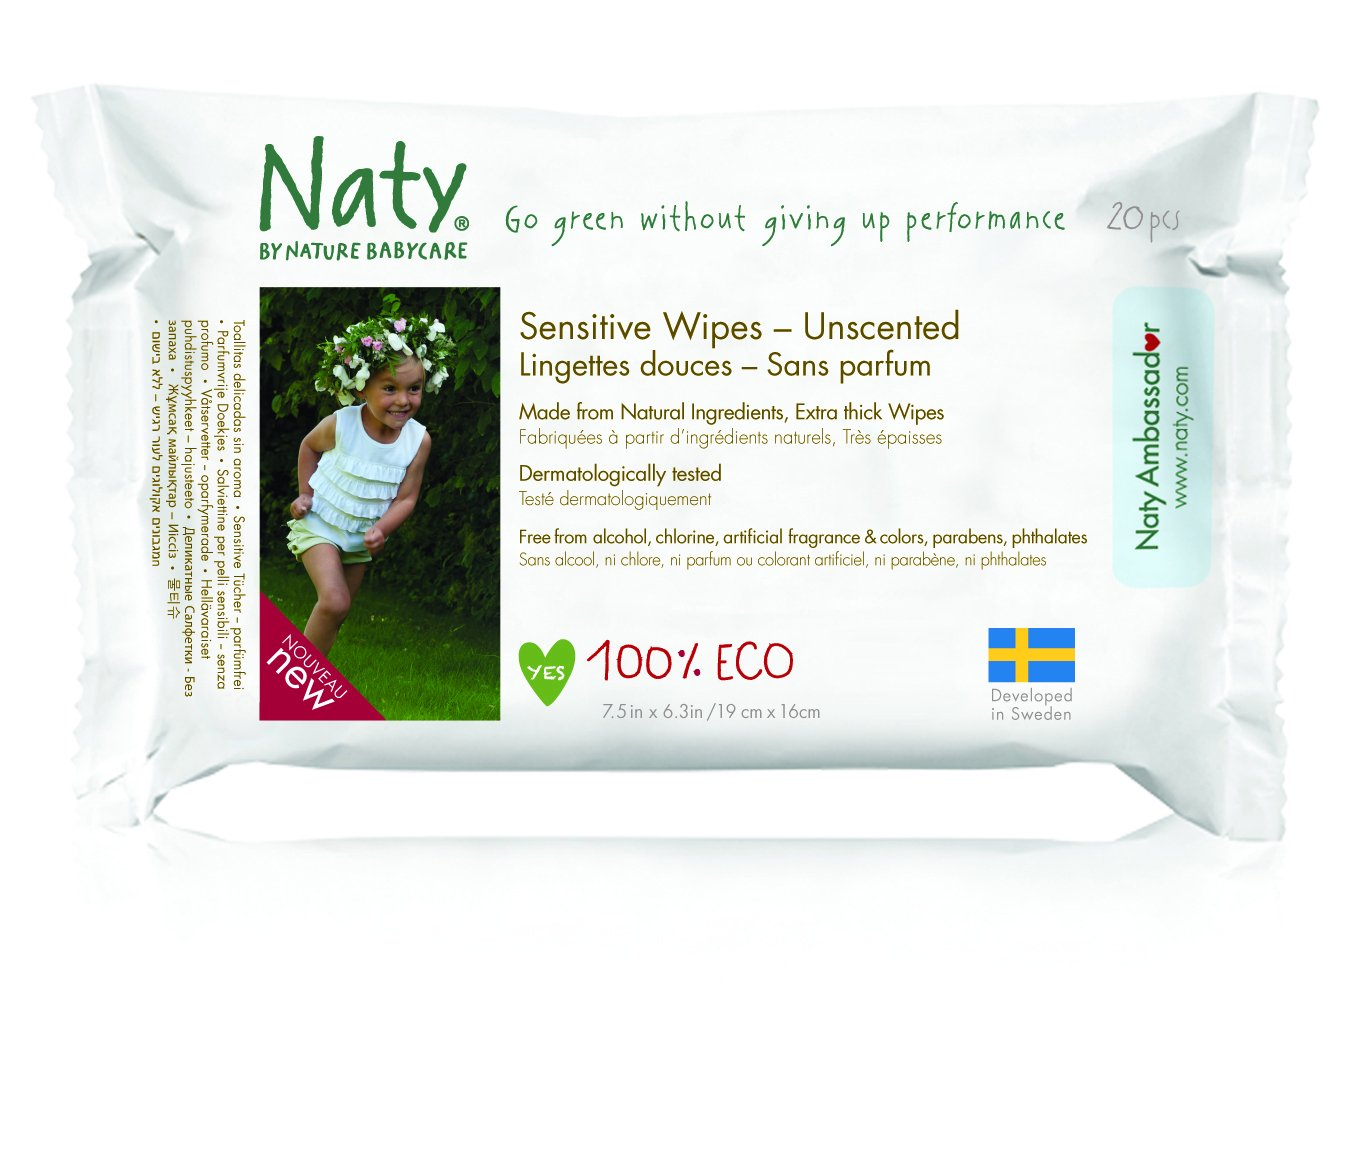 Amazon.com: Nature Babycare Eco Fragrance-Free Wipes Travel Pack, 20 wipes per pack, 12 Count by Nature Babycare: Beauty